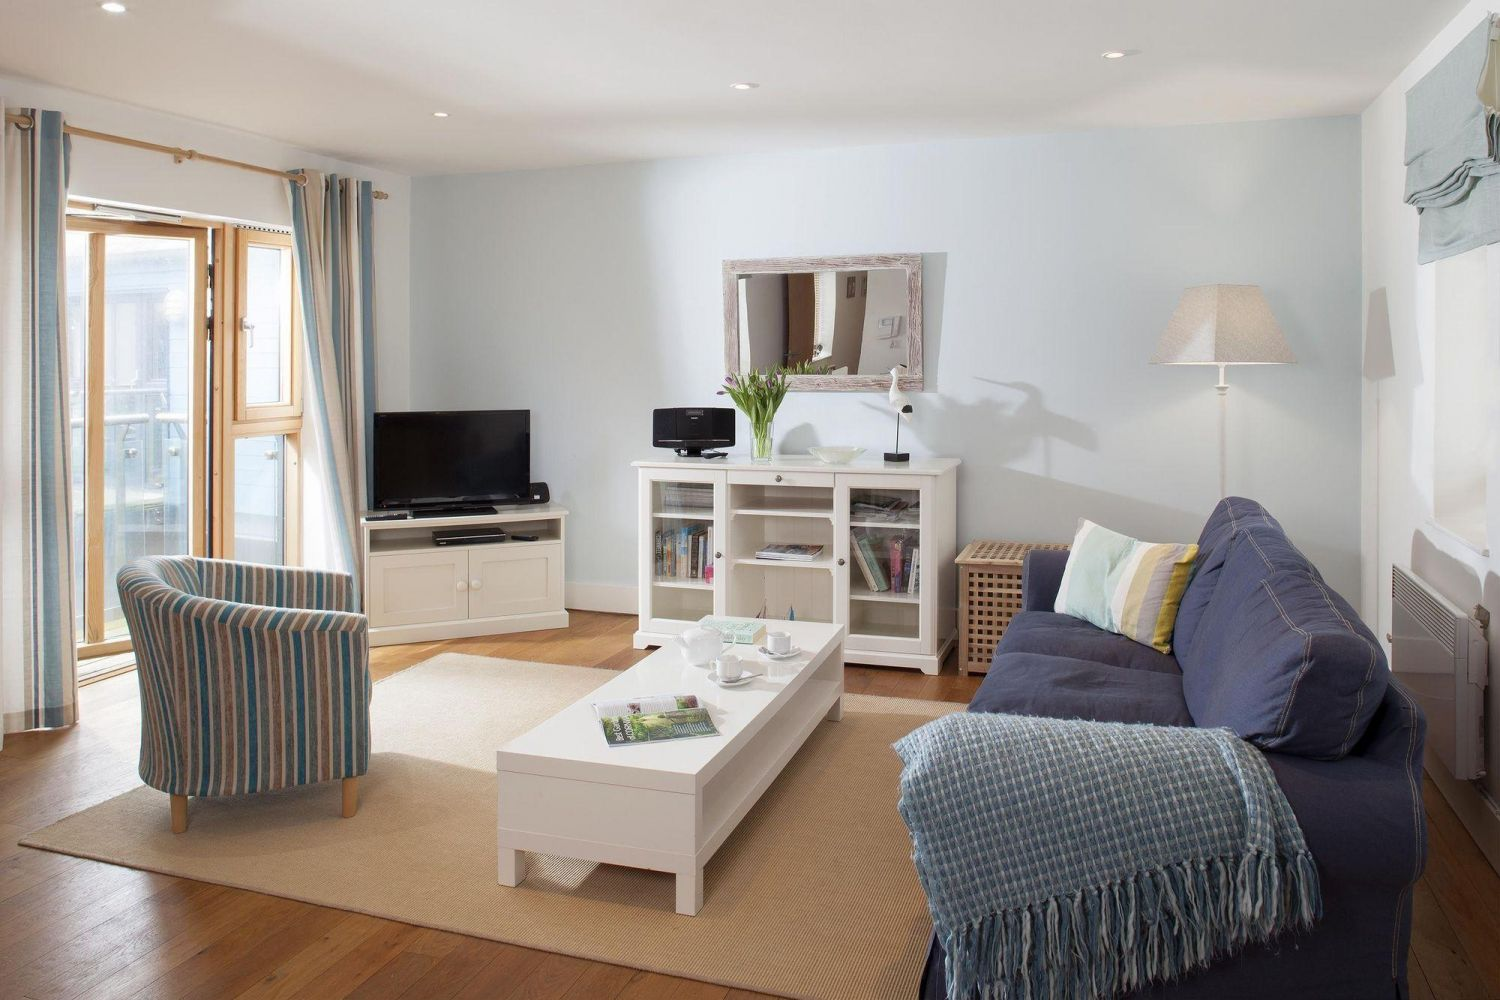 Shellseekers - Porthleven Holiday Cottages